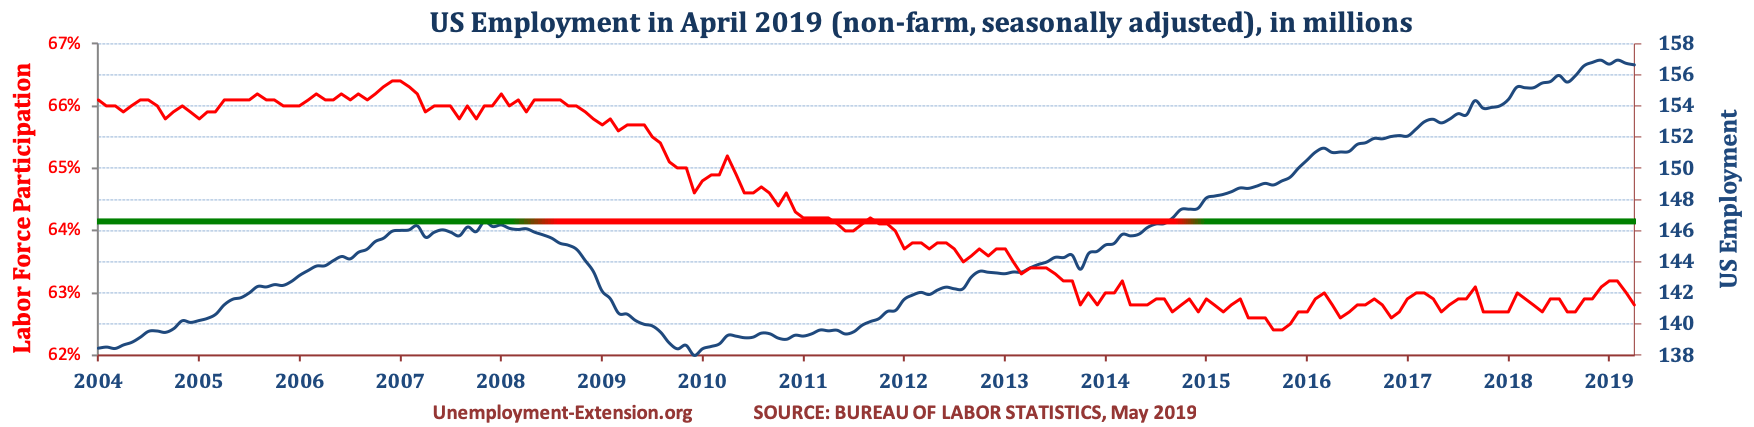 Total US Employment (non-farm, seasonally adjusted) in April of 2019. US economy has lost approximately 10 million jobs in comparison to pre-resession level.